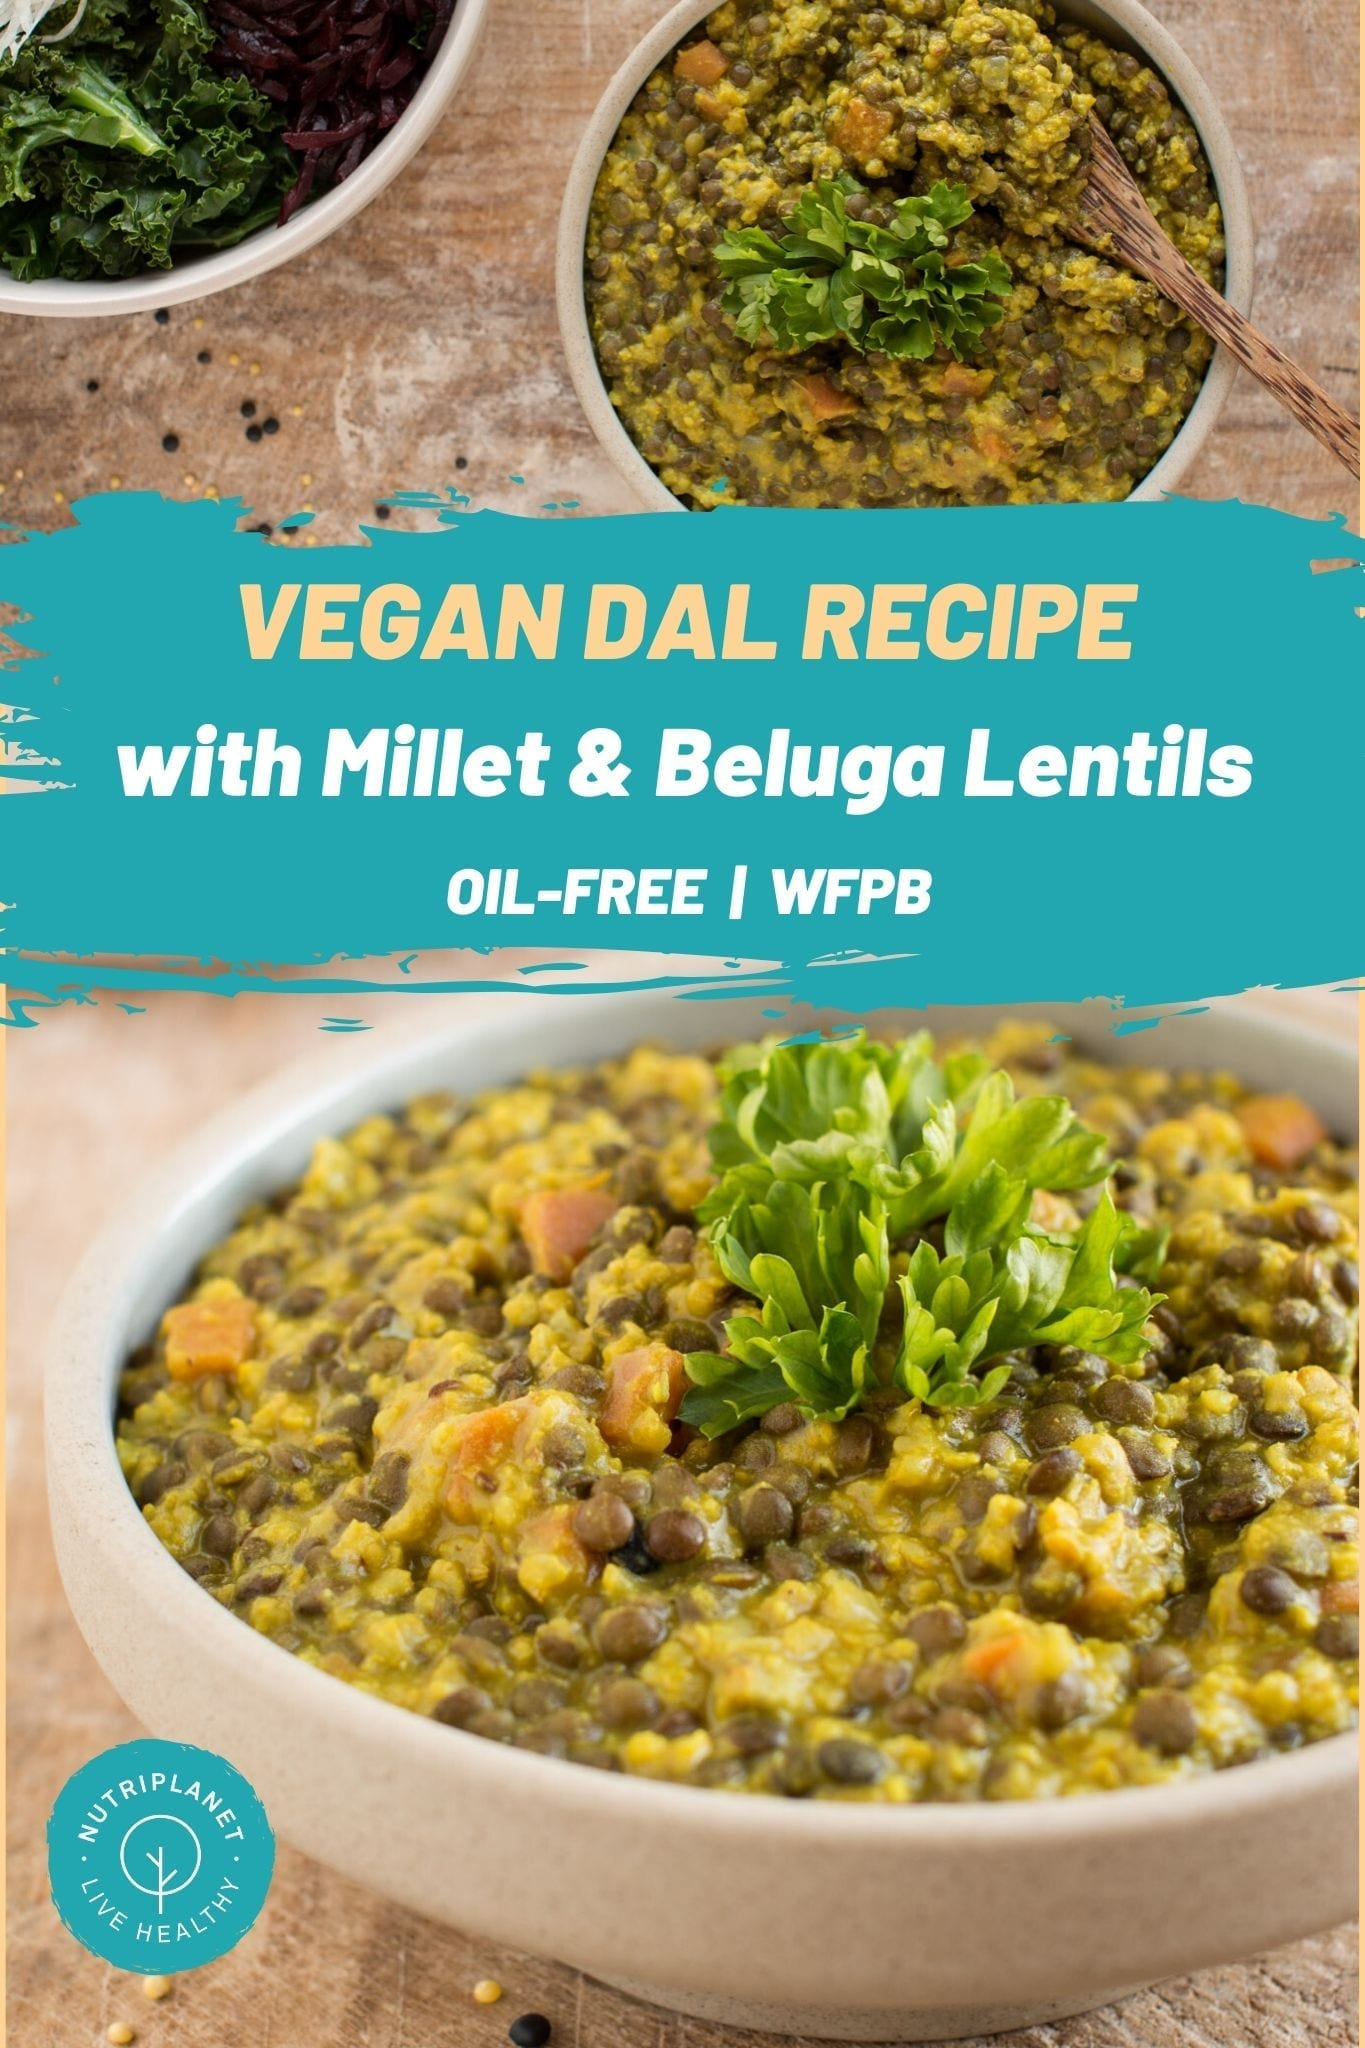 Easy and delicious oil-free vegan dal recipe with millet and black lentils